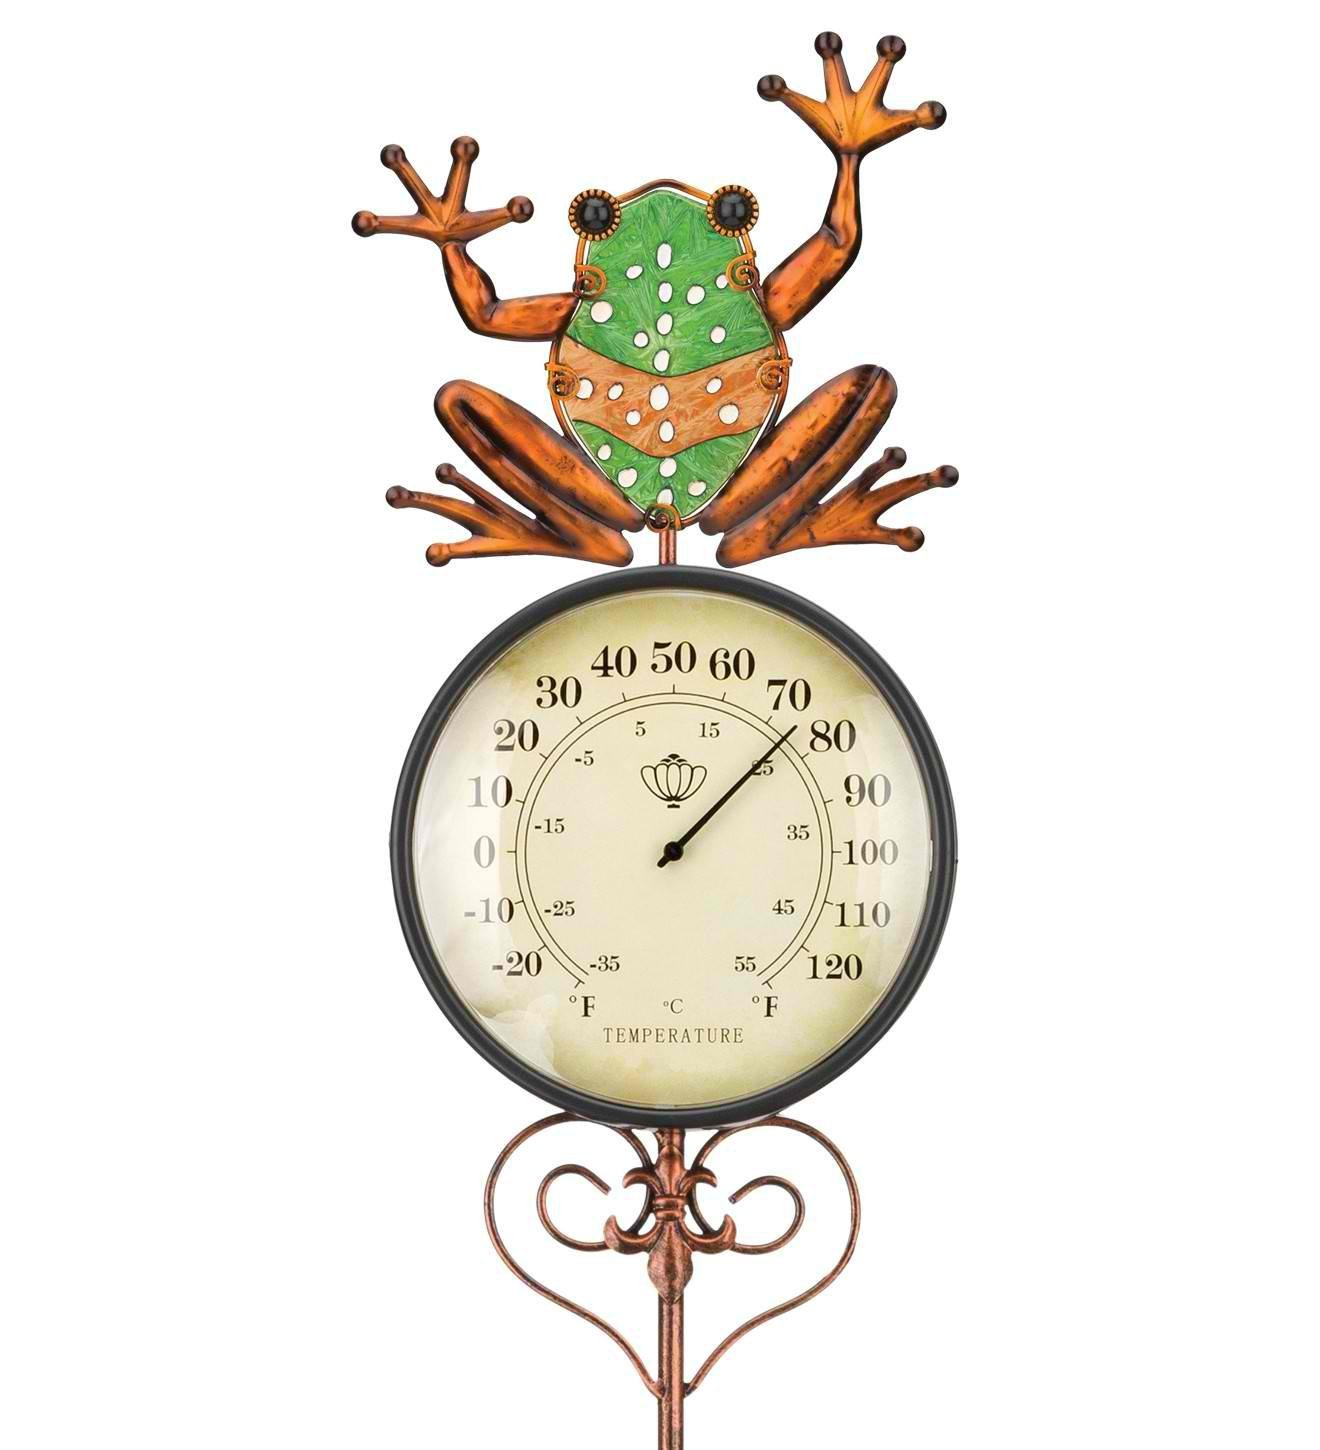 Regal Art & Gift 7 Inches x 1.5 Inches x 47.25 Inches Thermometer Garden Stake Frog